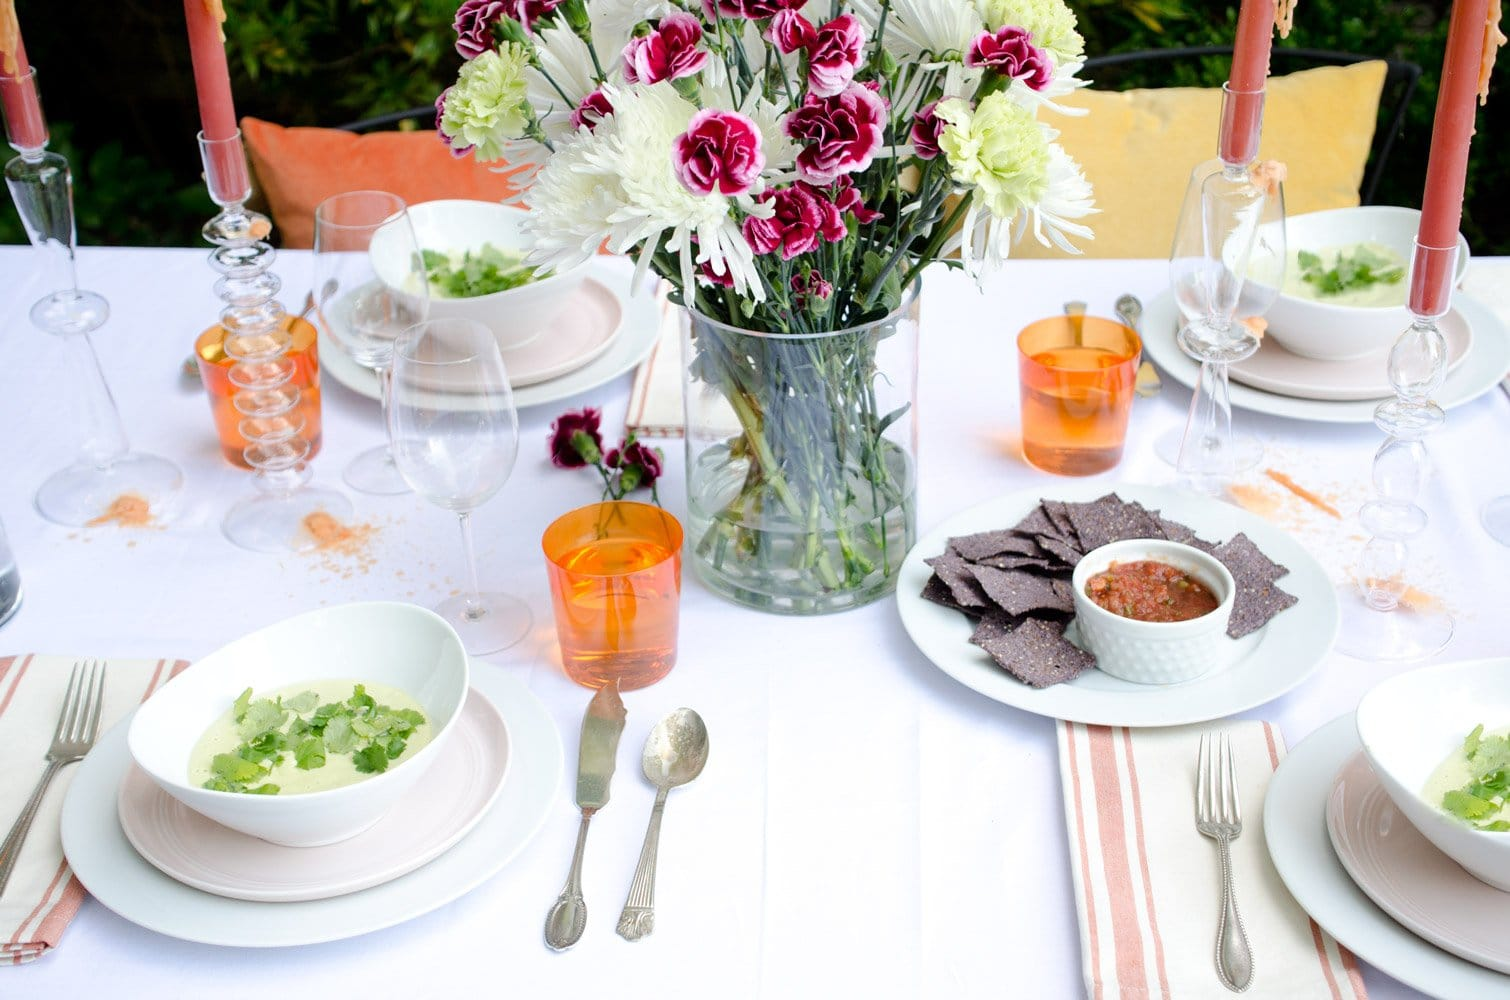 Brighten up your Cinco de Mayo tabletop with pops of orange, yellow and blush, and bring in colored water glasses and striped napkins for some pizazz.